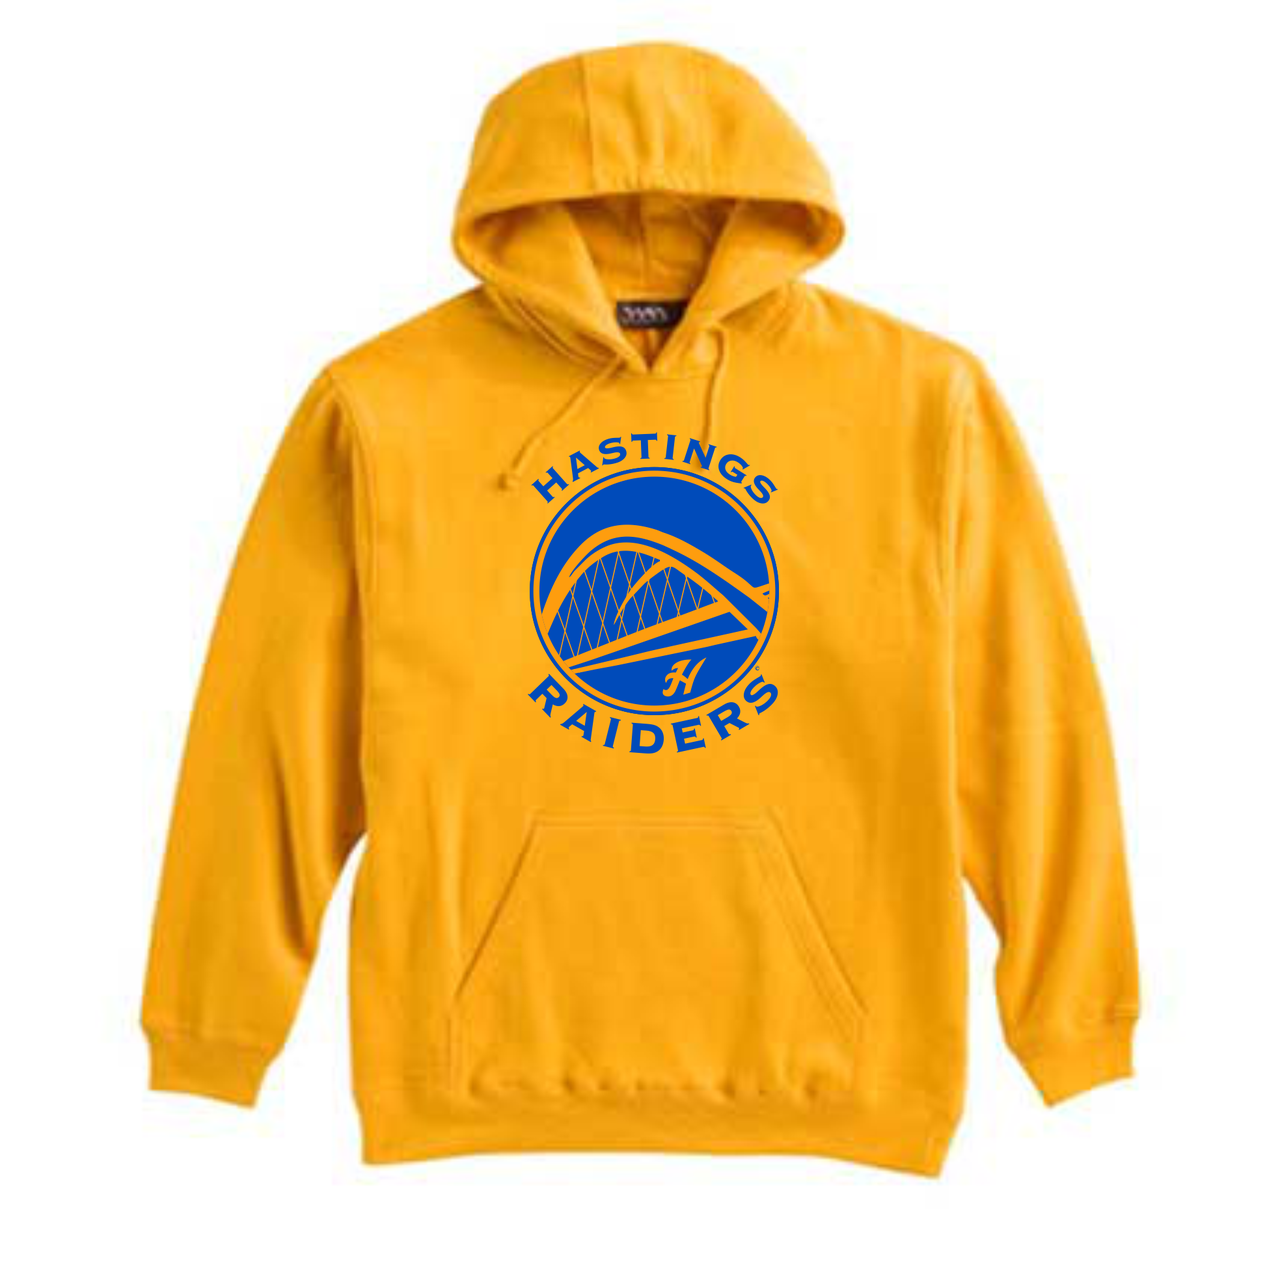 49e174269 GOLD OUT Hoodie - Adult Sizes - OrderTeamGear.com by United Promotions